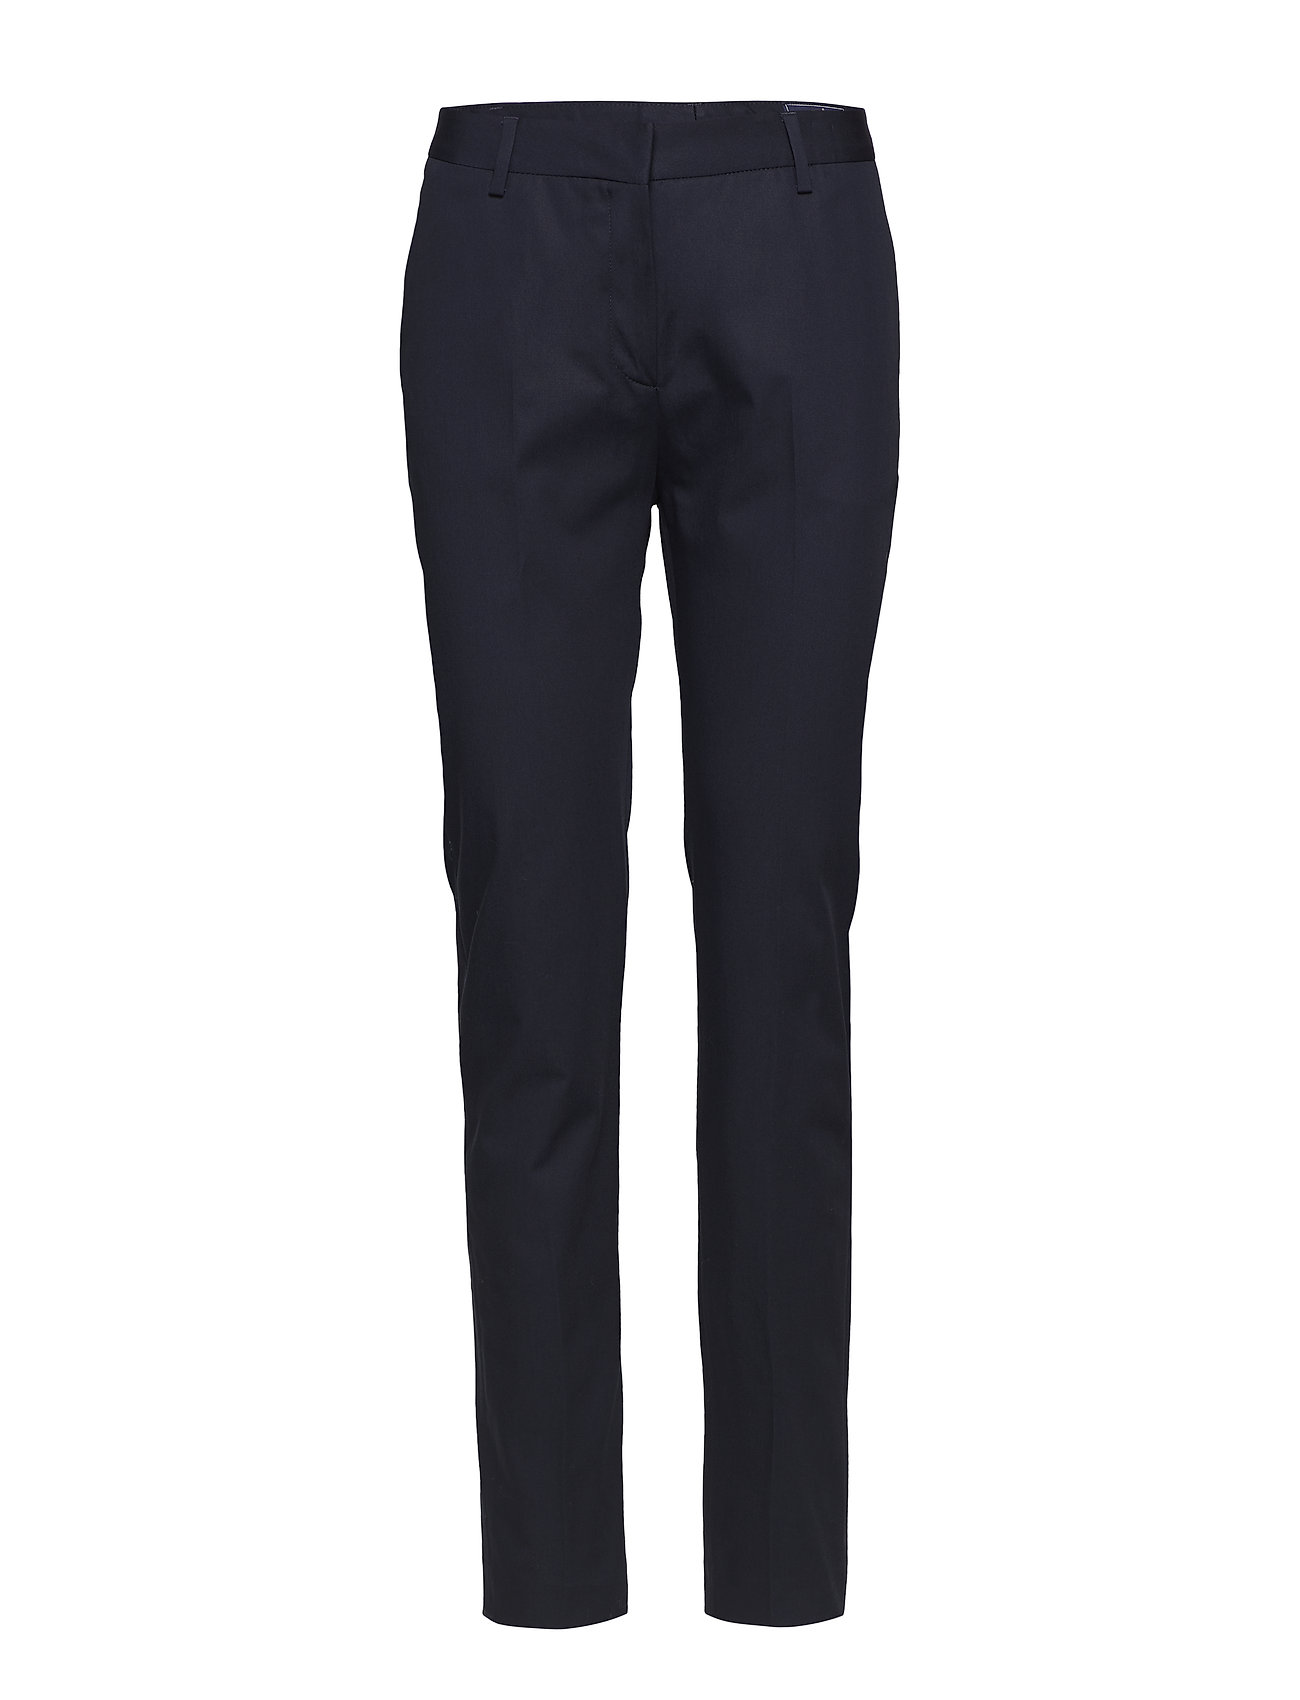 Lexington Clothing Blake Narrow Leg Pants - DEEP MARINE BLUE